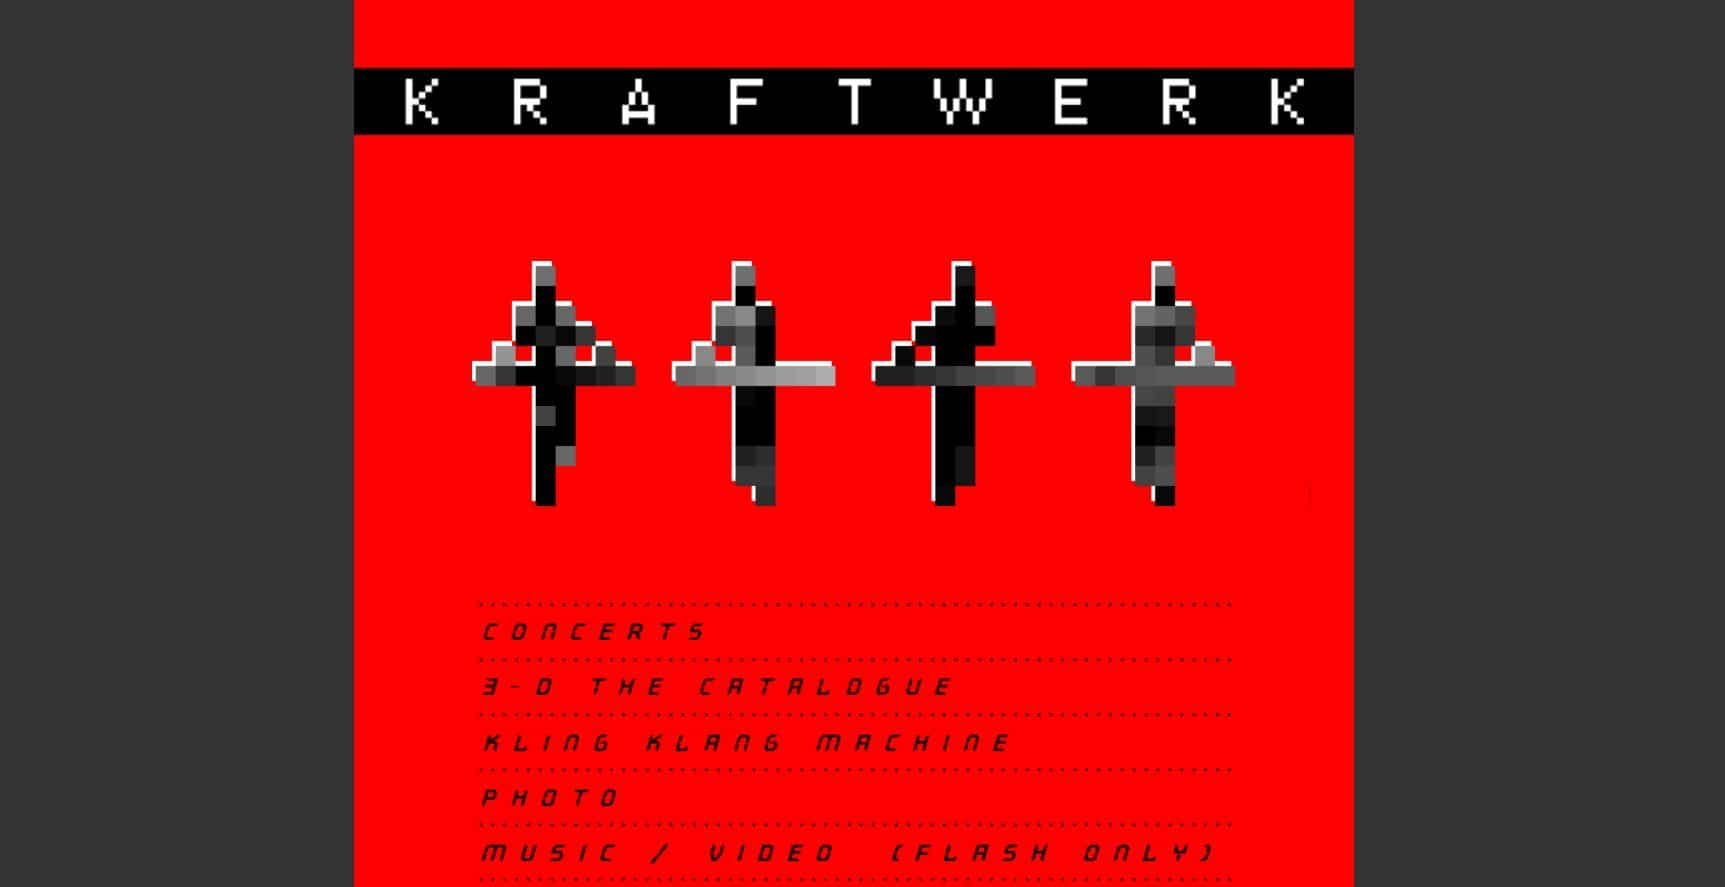 KRAFTWERK on Blockchain